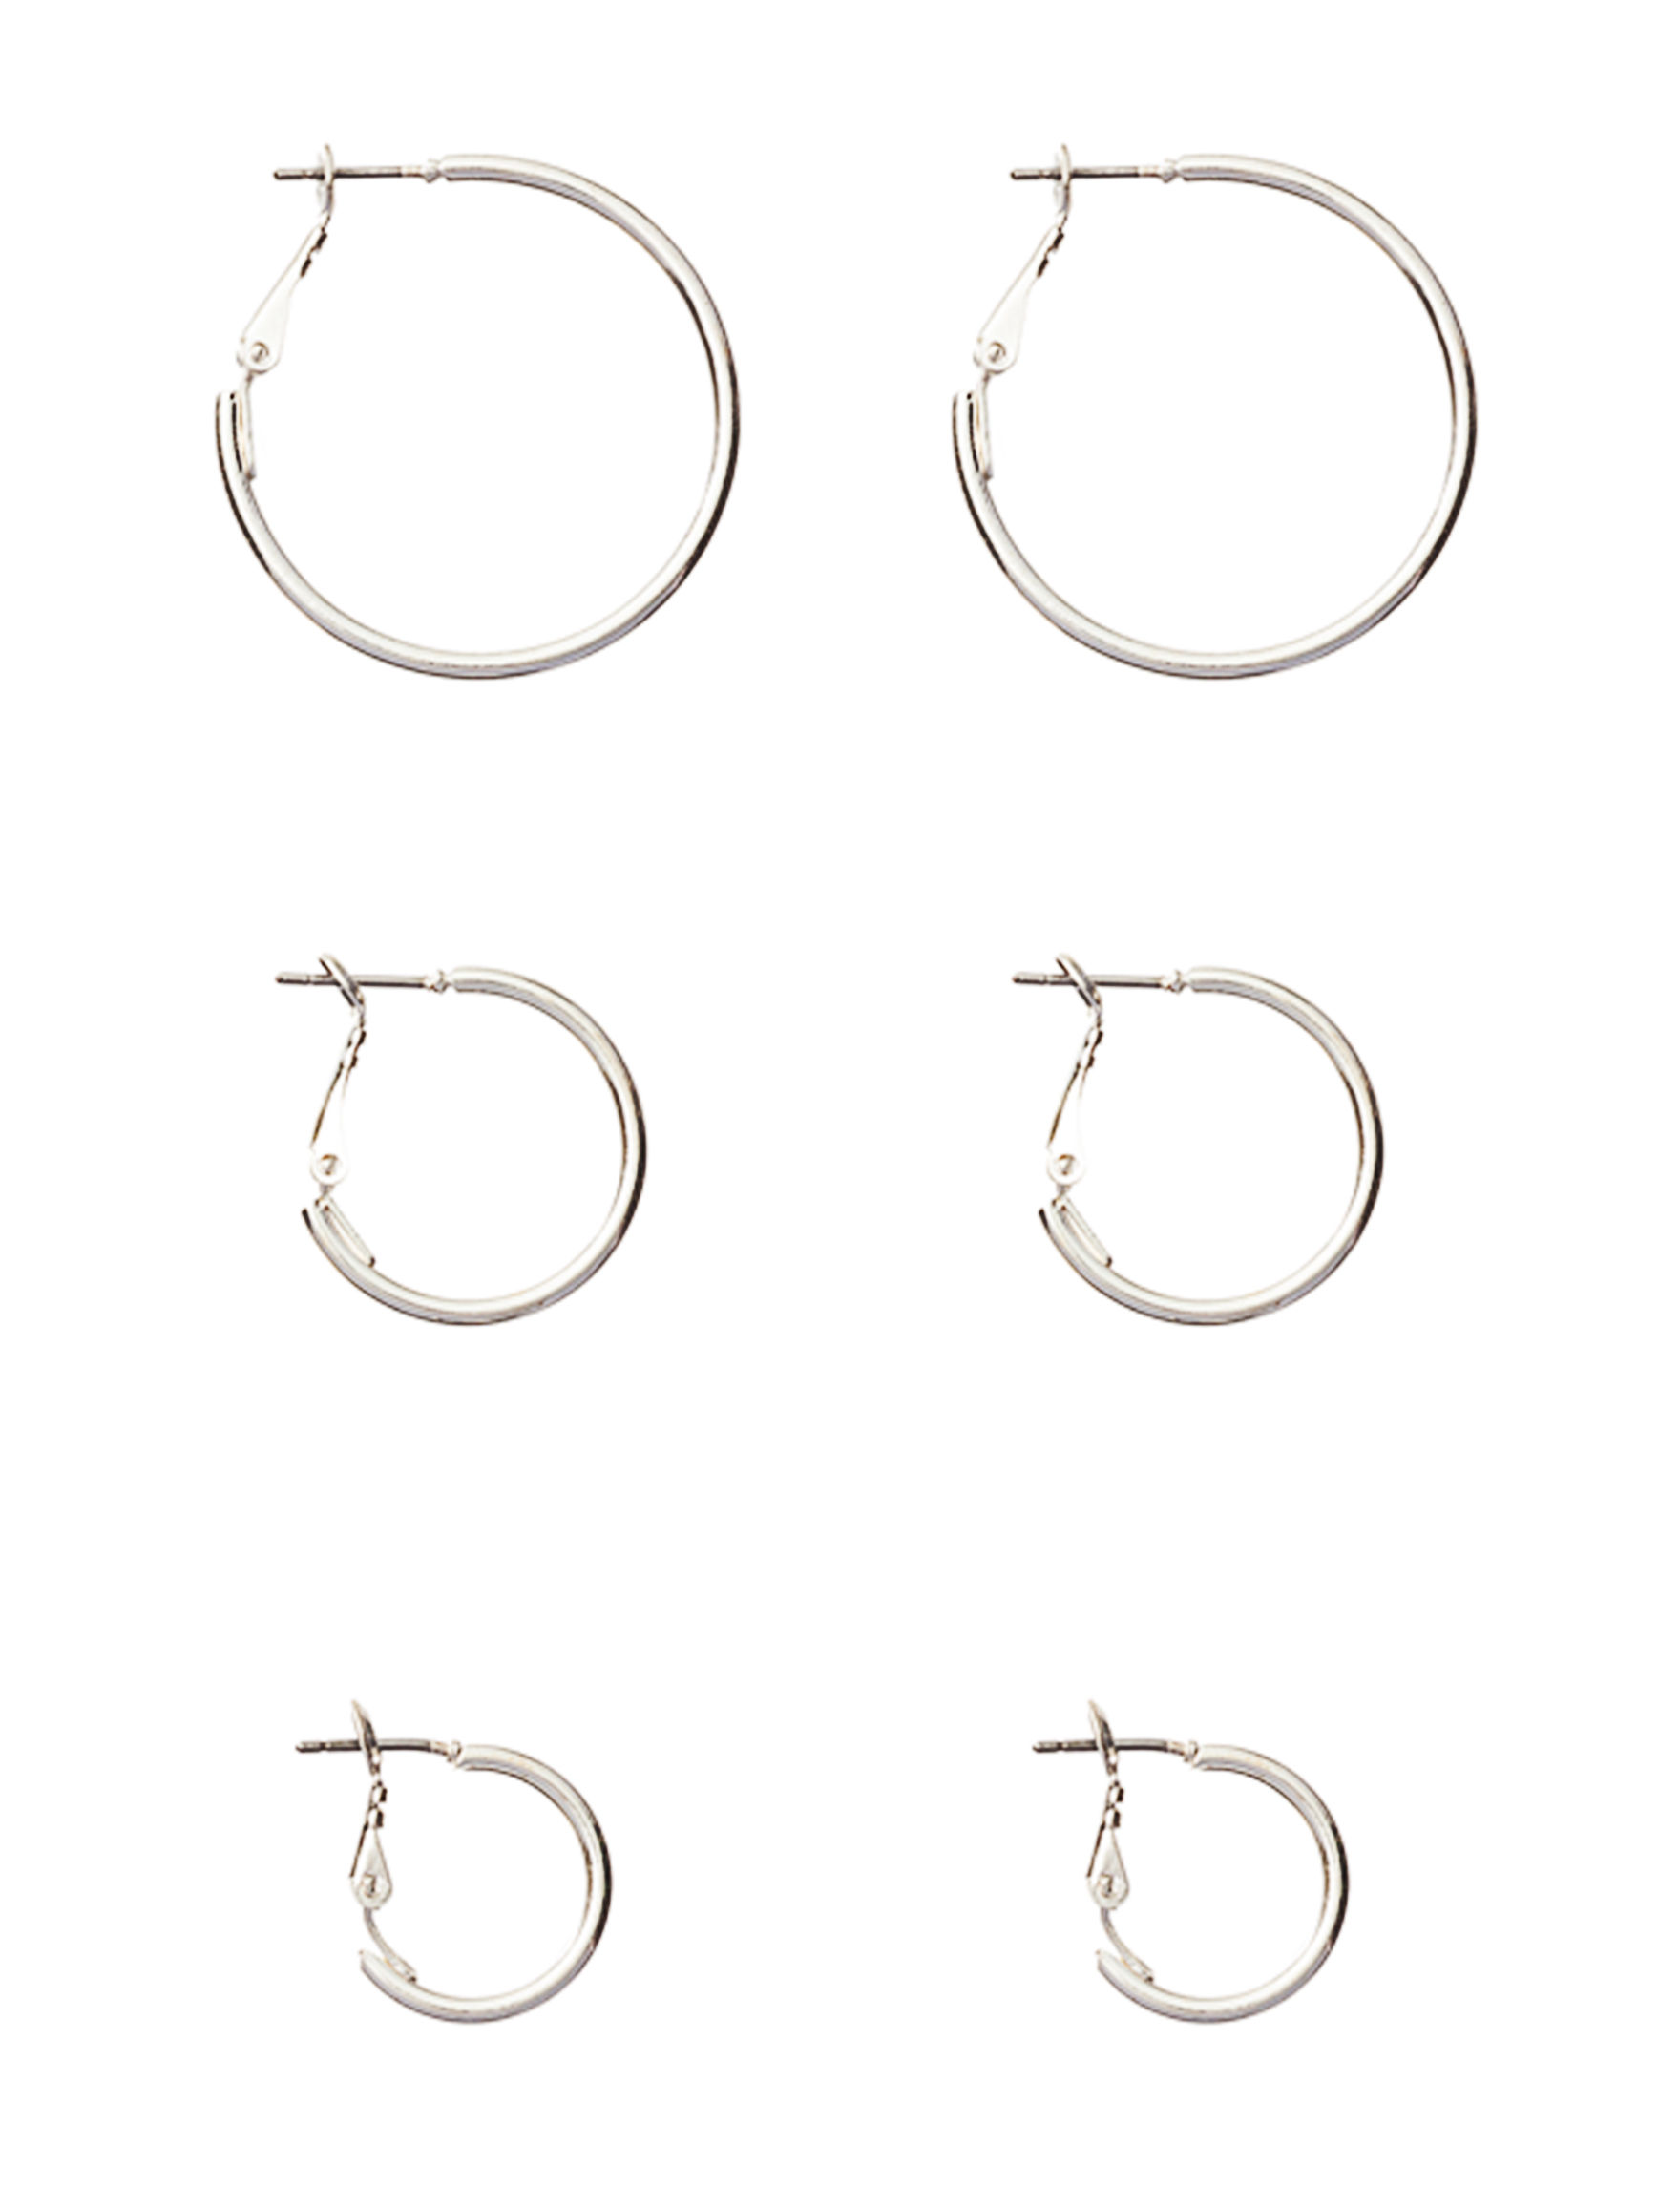 Hannah Silver Hoops Earrings Fashion Jewelry